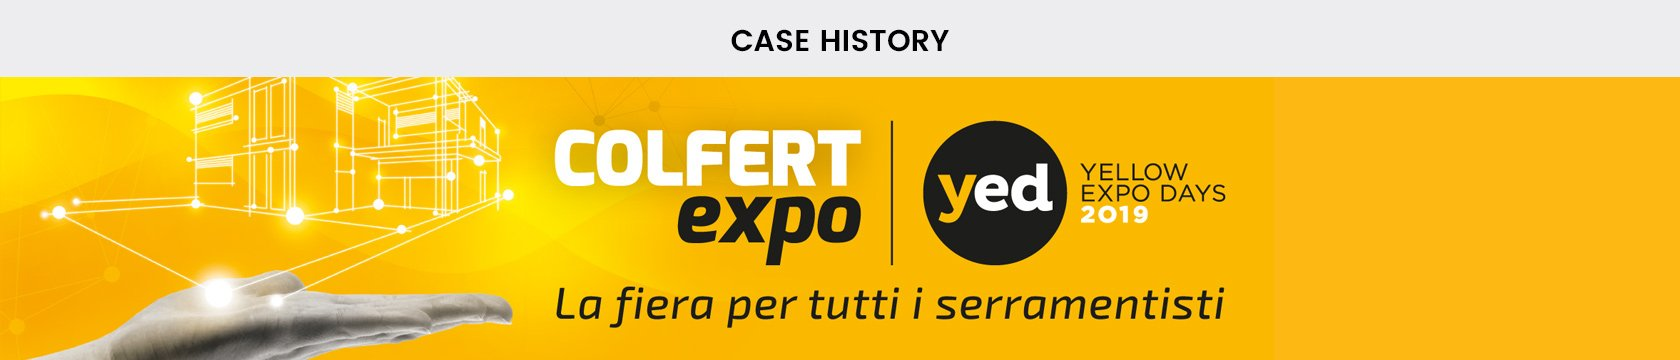 Clappit-Eventi-Aziendali-Business-B2B-Case-History-Colfert--YED-Yellow-Expo-Days-Top-002